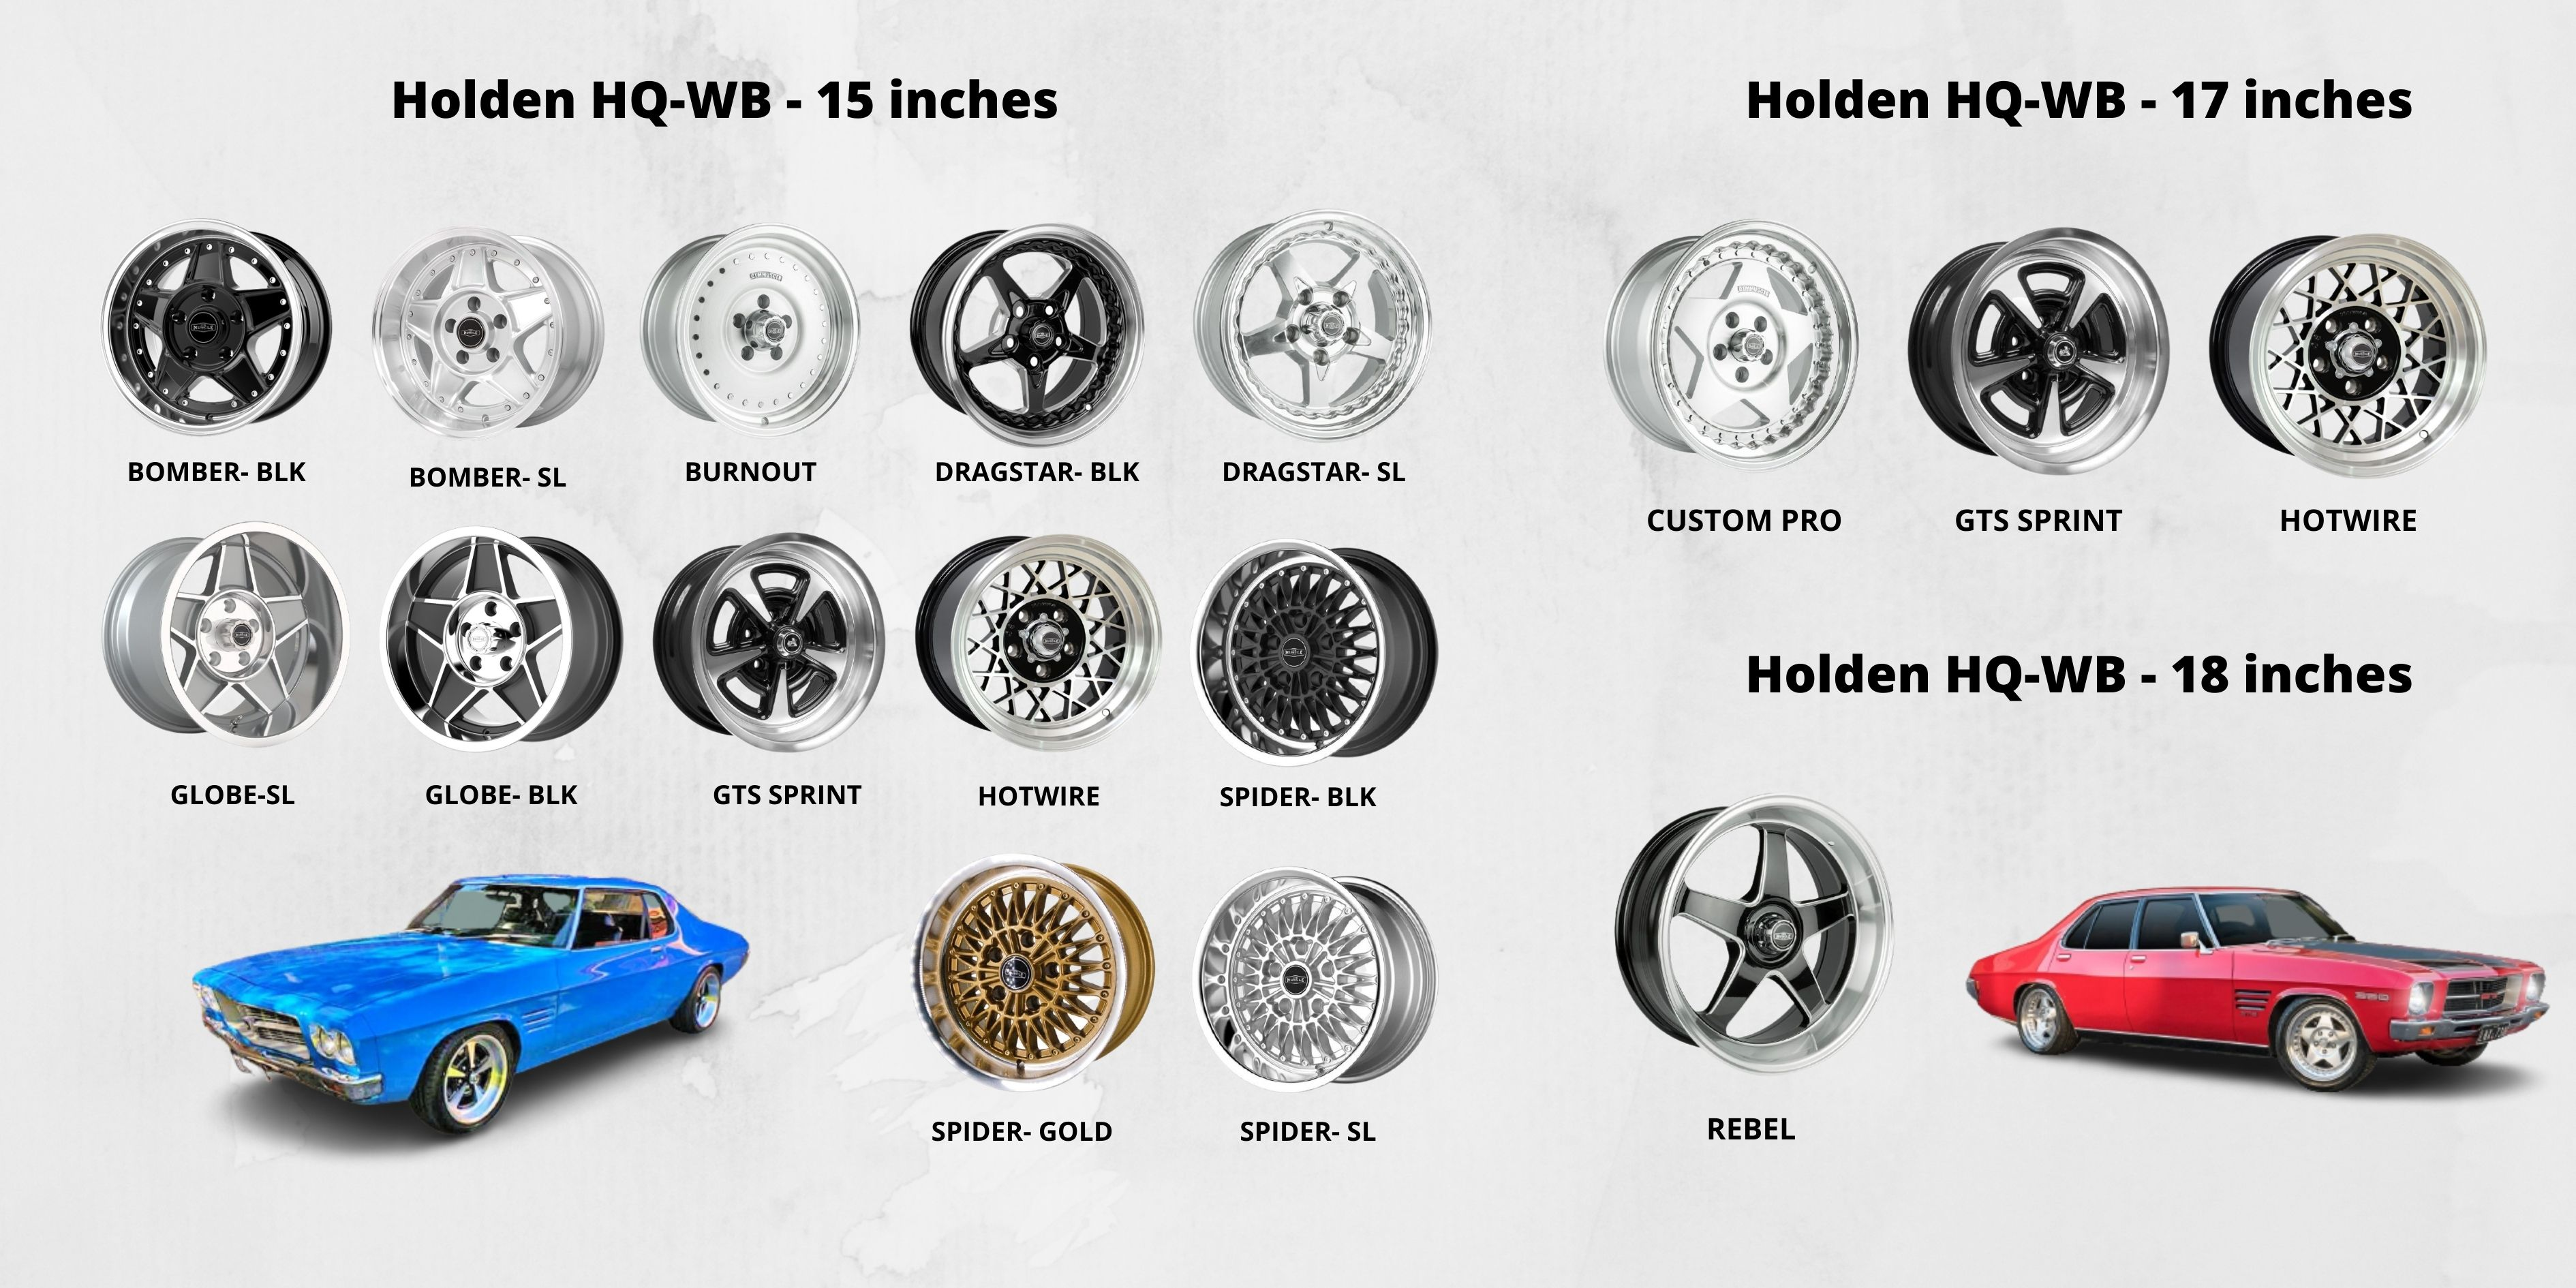 Holden HQ-WB